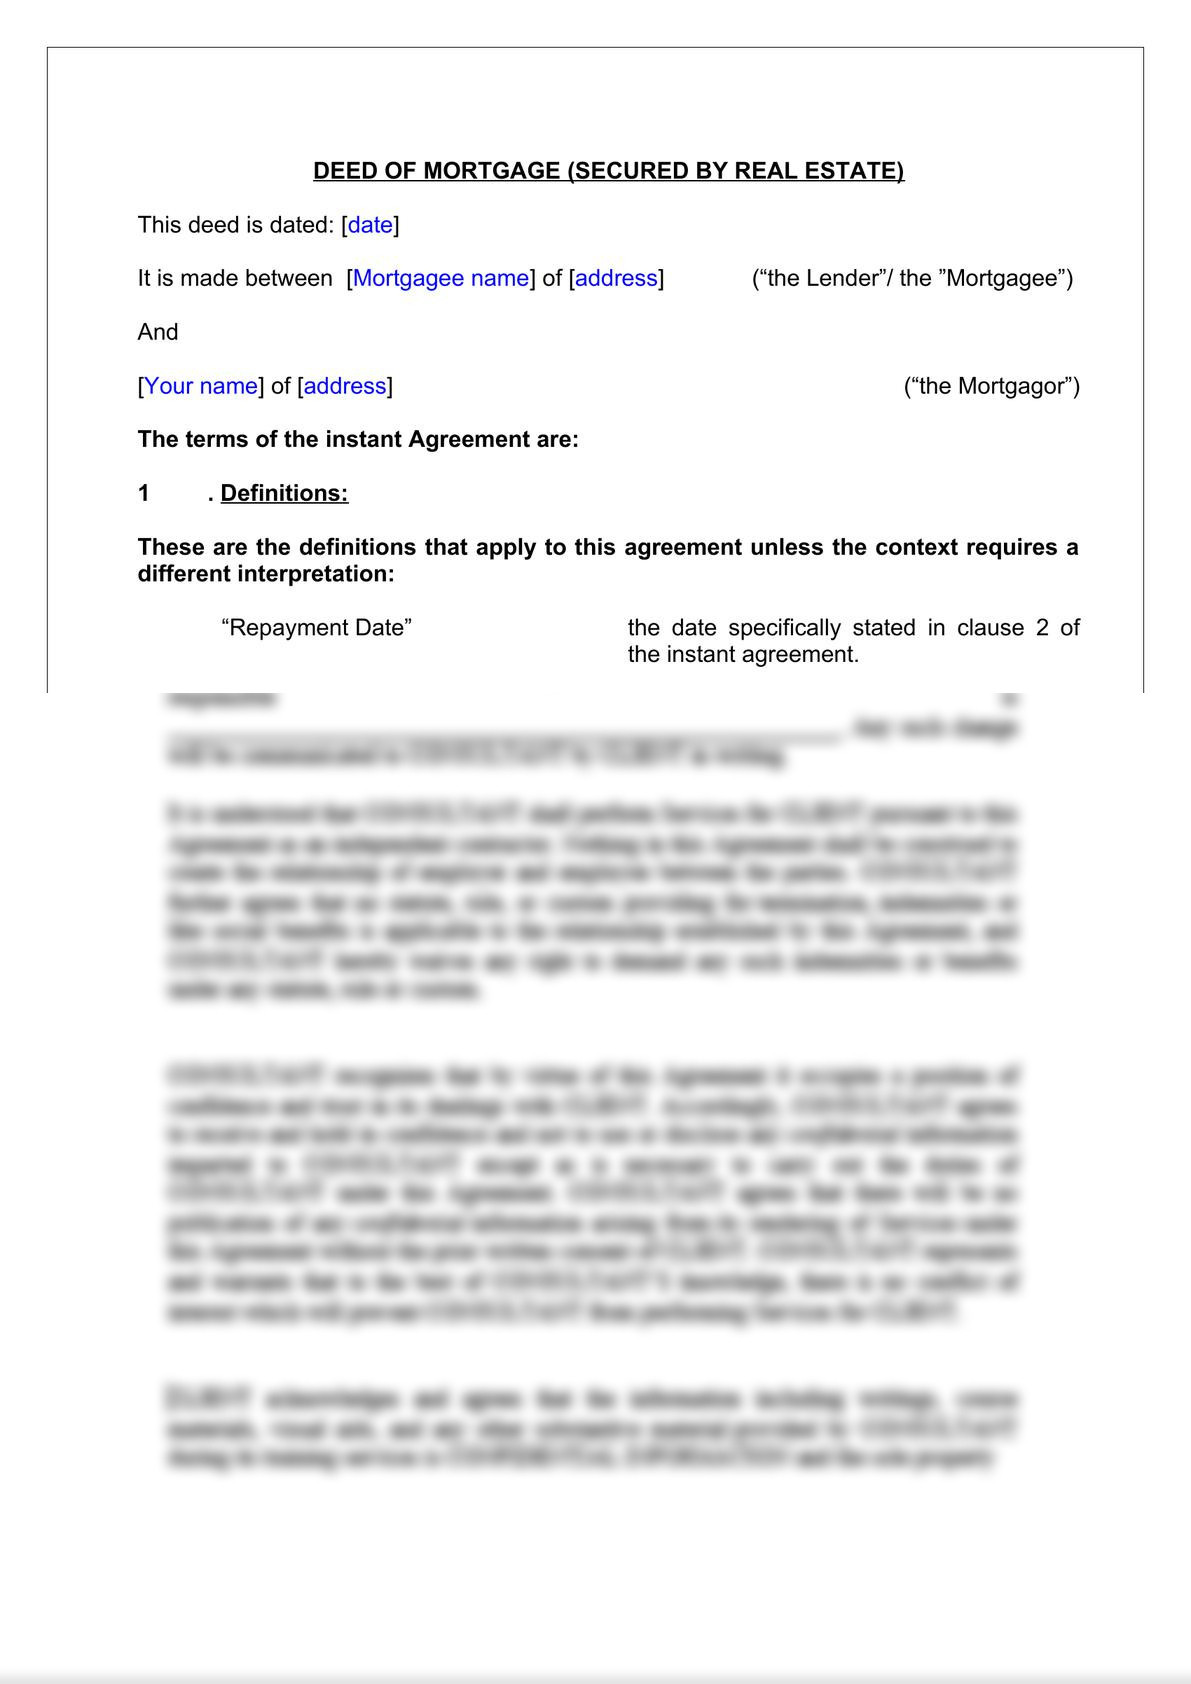 Deed of Mortgage -2